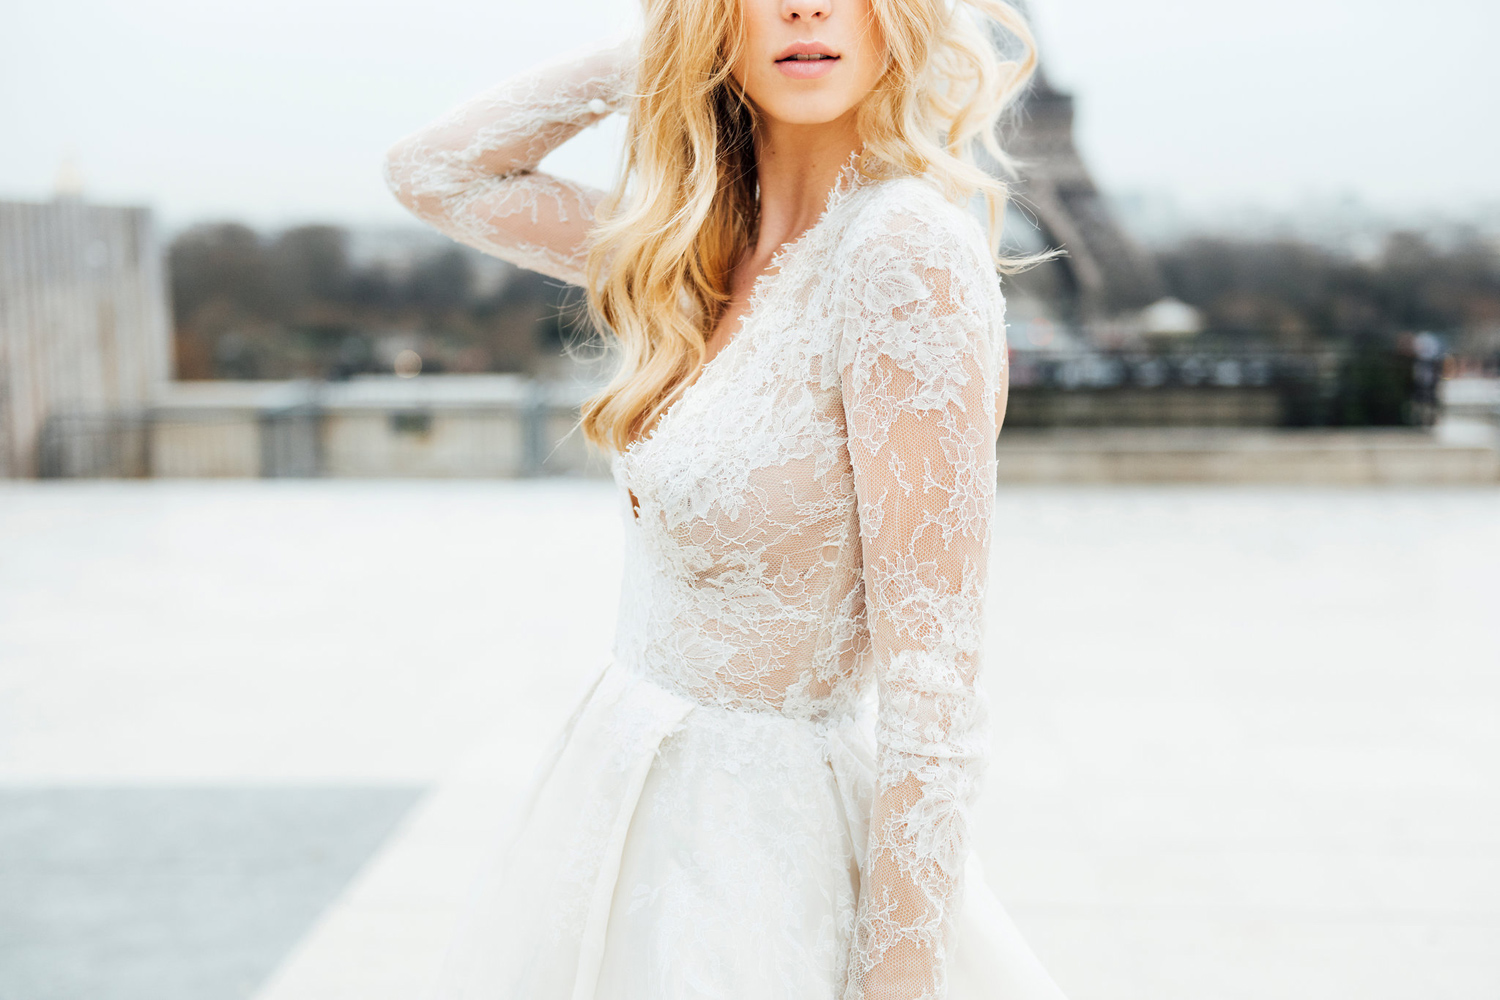 katie mitchell monique lhuillier bridal paris france wedding photographer_03.jpg